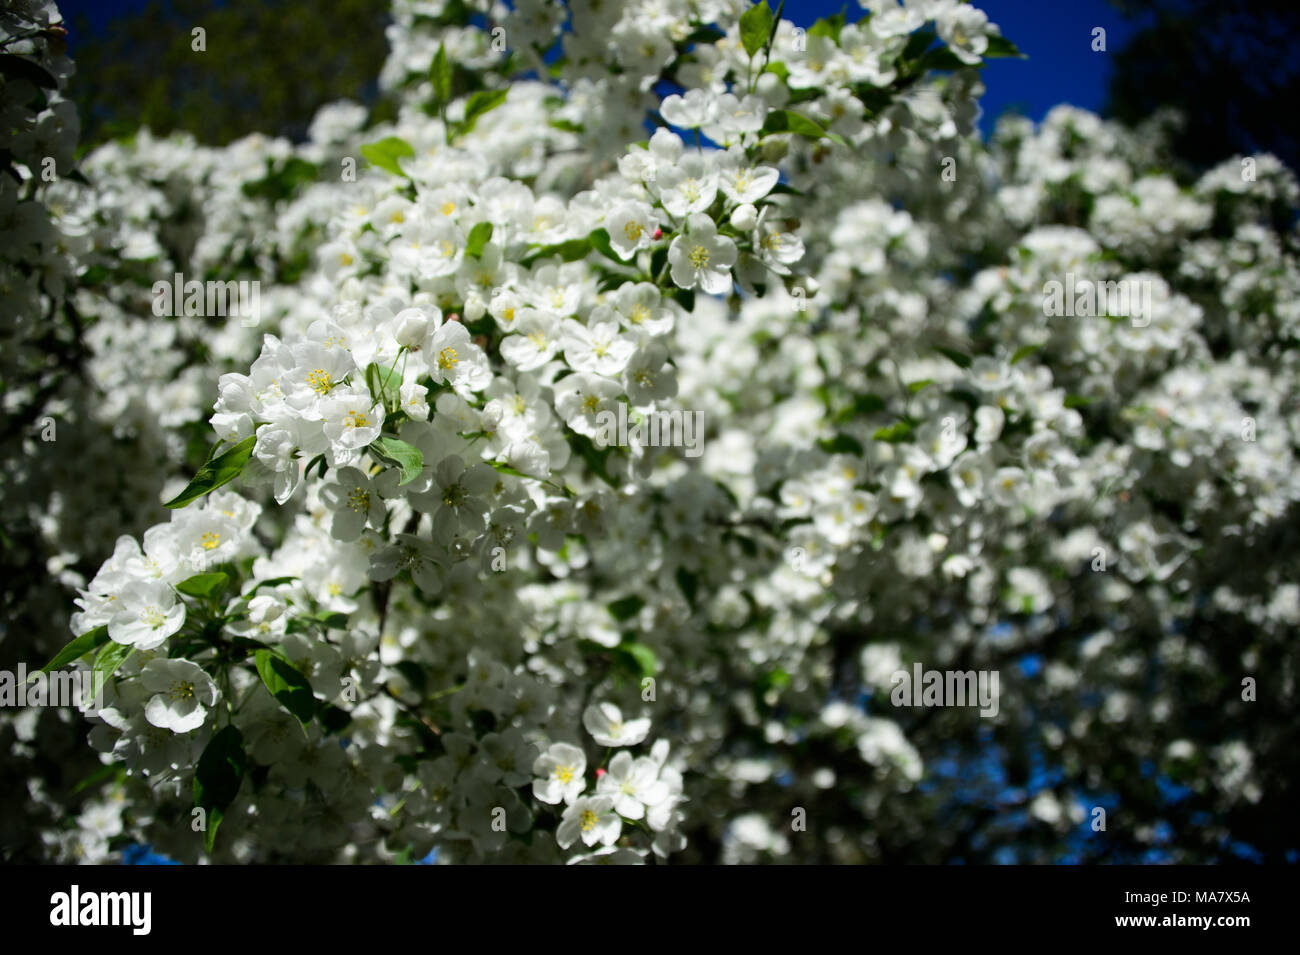 White flowers bloom on a crabapple tree during spring at msgr white flowers bloom on a crabapple tree during spring at msgr mcgolrick park in brooklyn new york city may 2013 mightylinksfo